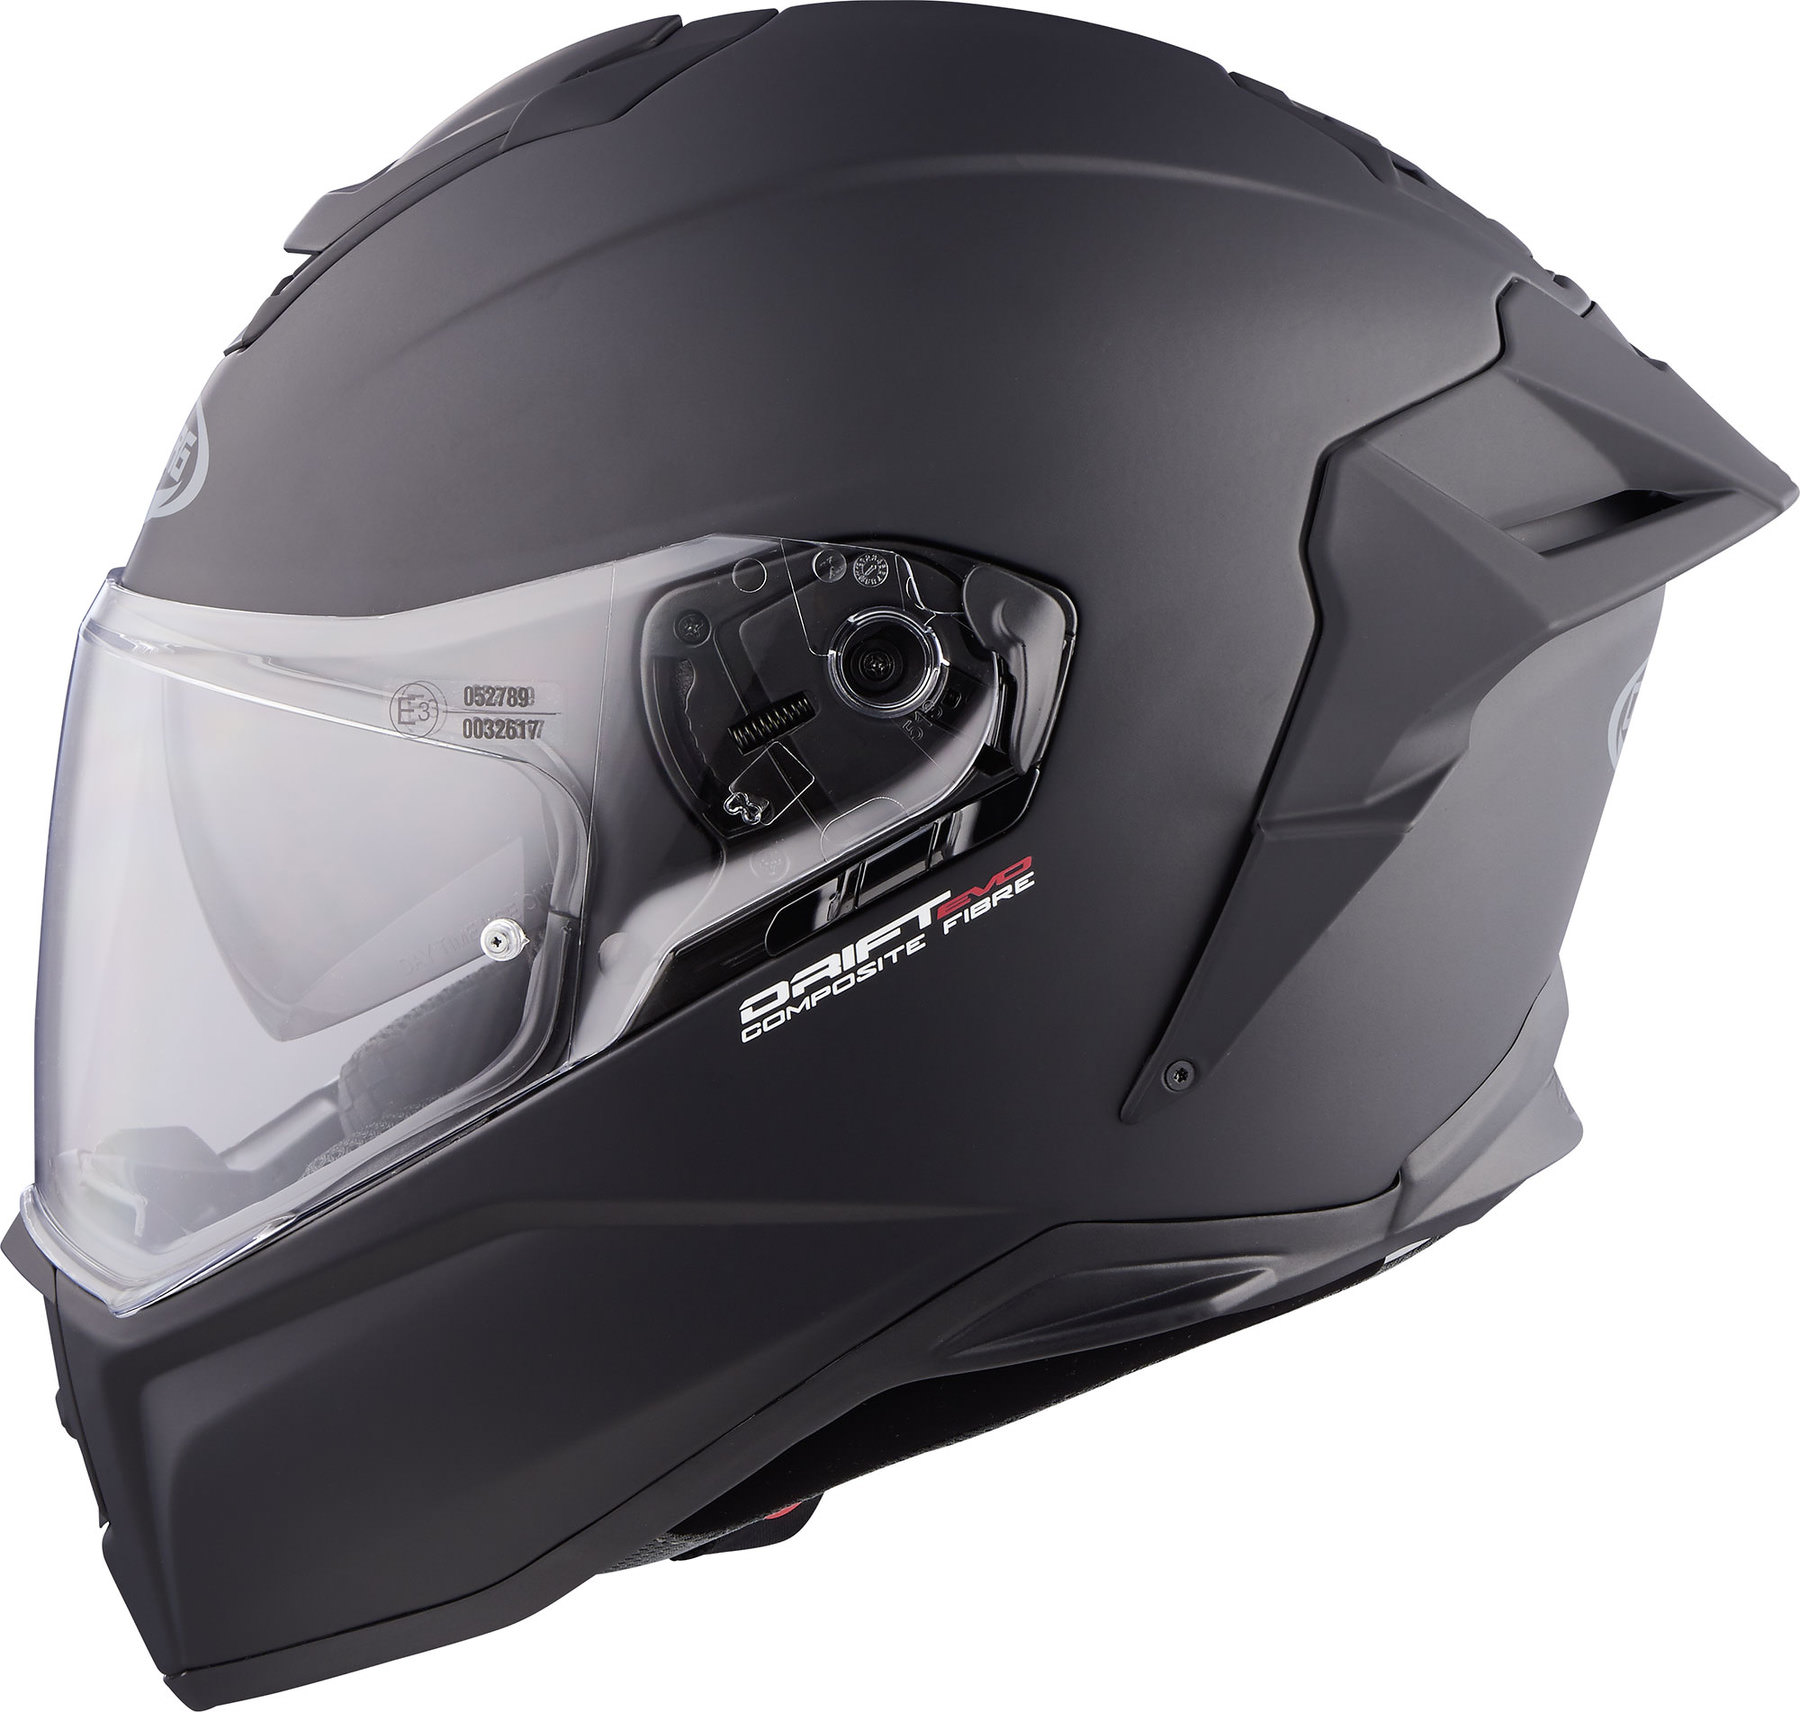 Buy Caberg Drift Evo Full-Face Helmet   Louis motorcycle clothing and  technology